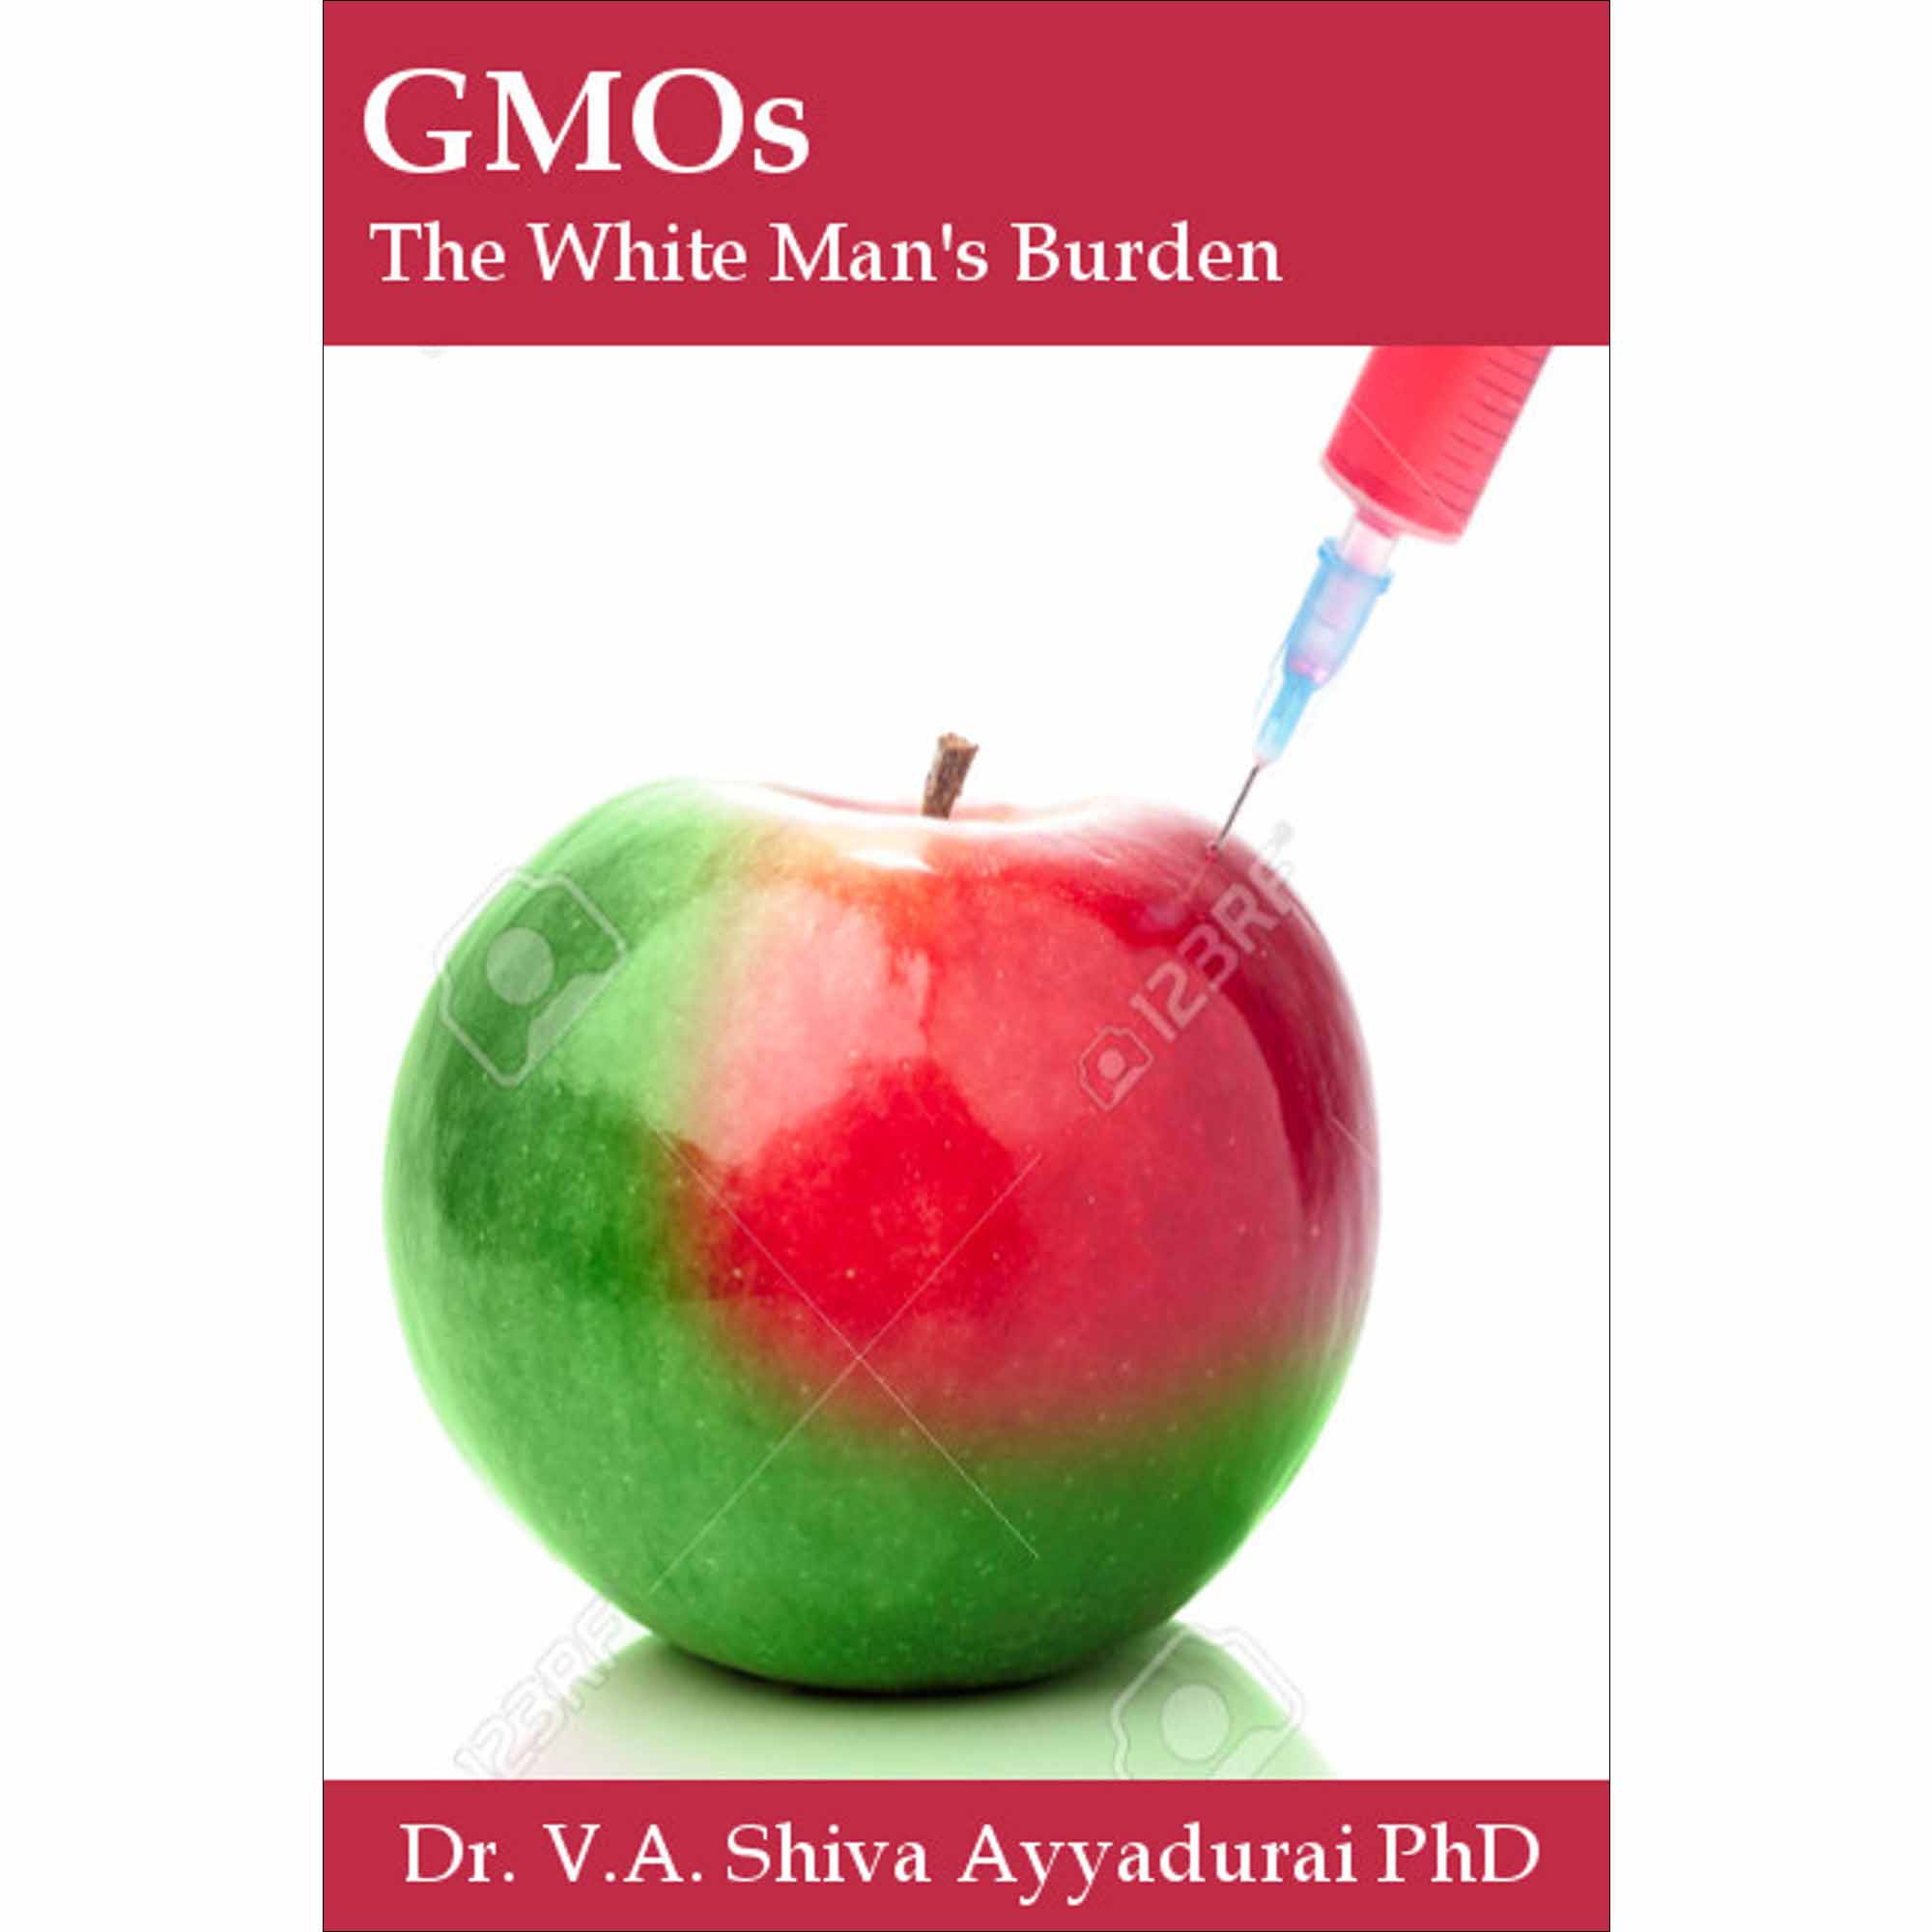 GMOs: The White Man's Burden